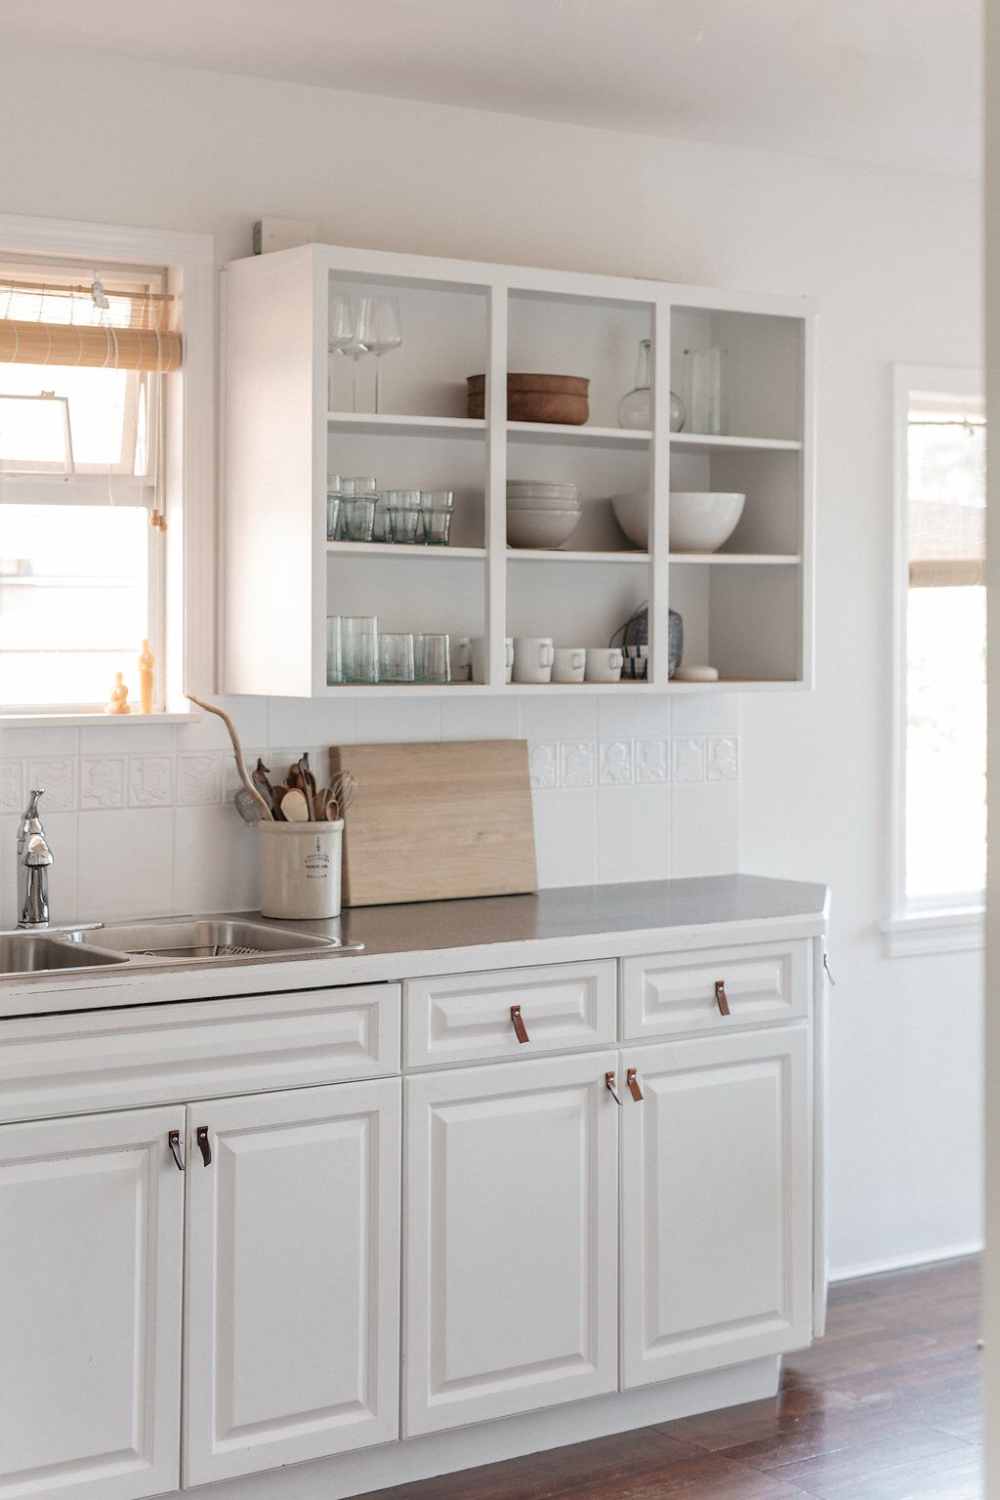 Pale And Interesting An Artful And Economical Renovation In Vancouver Bc Remodelista In 2020 Upper Kitchen Cabinets Open Kitchen Cabinets Kitchen Cabinets